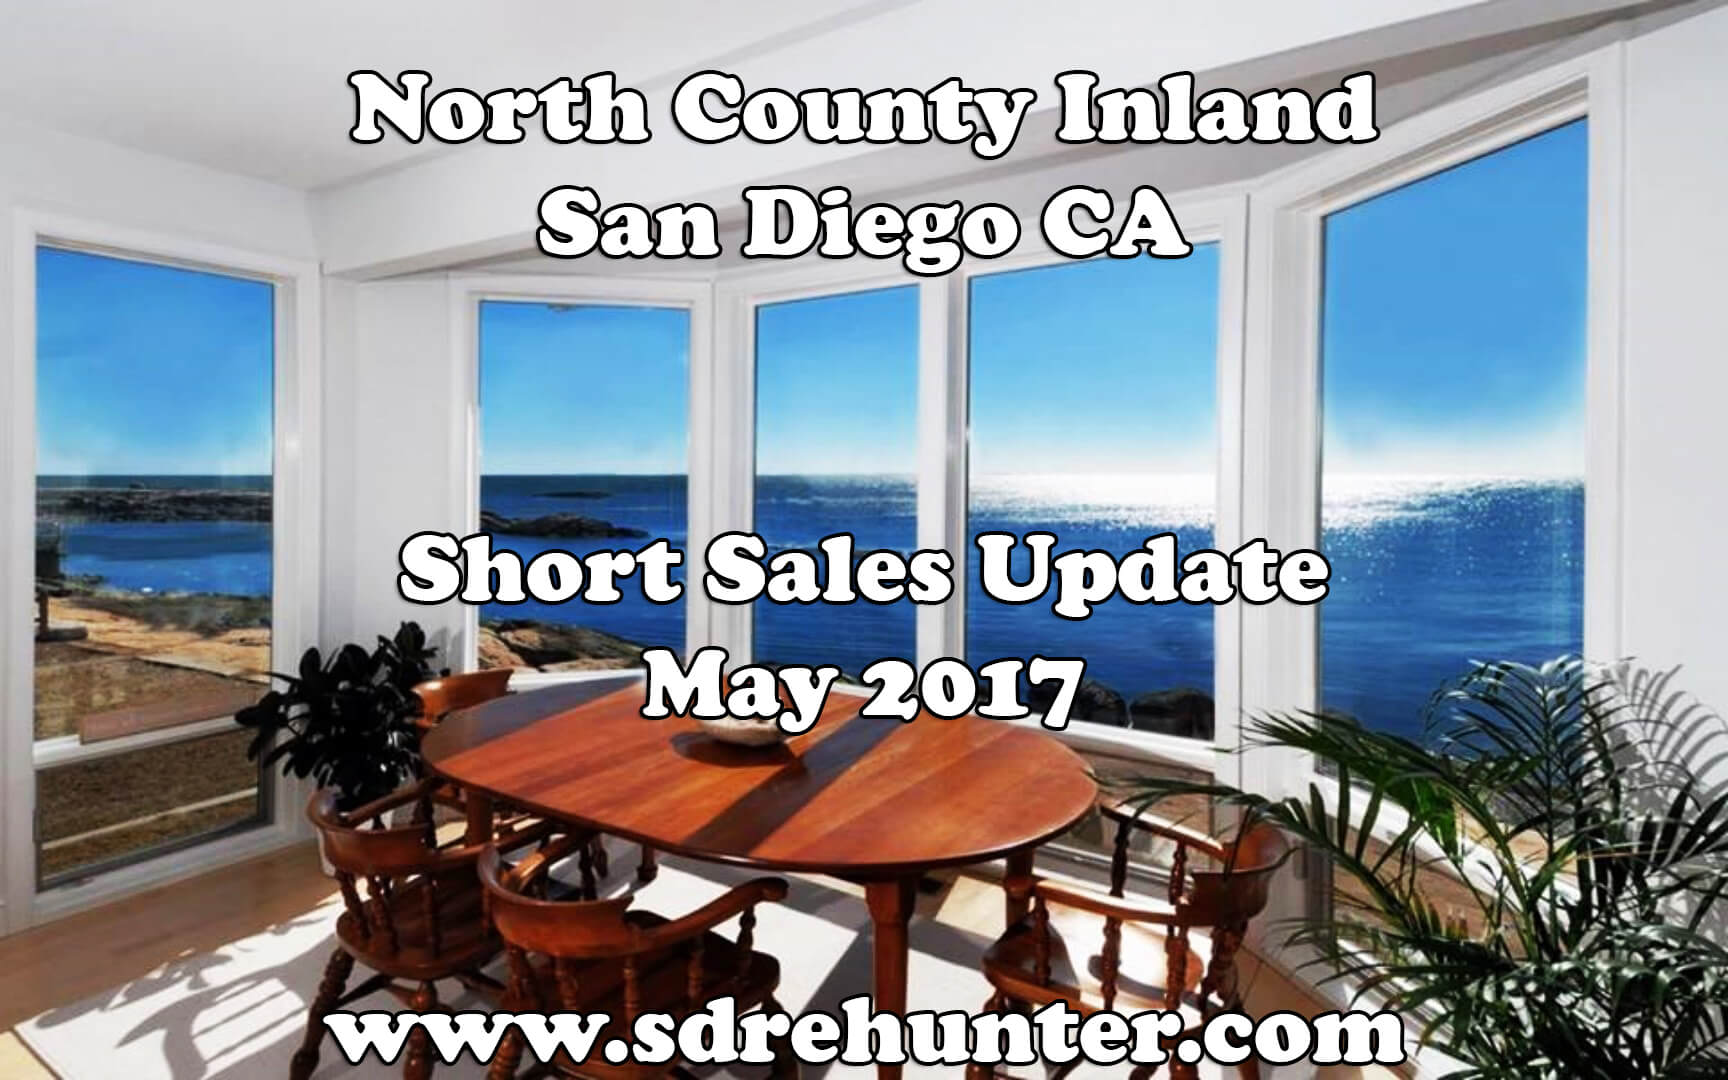 North County Inland San Diego Ca Short Sales Update May 2017